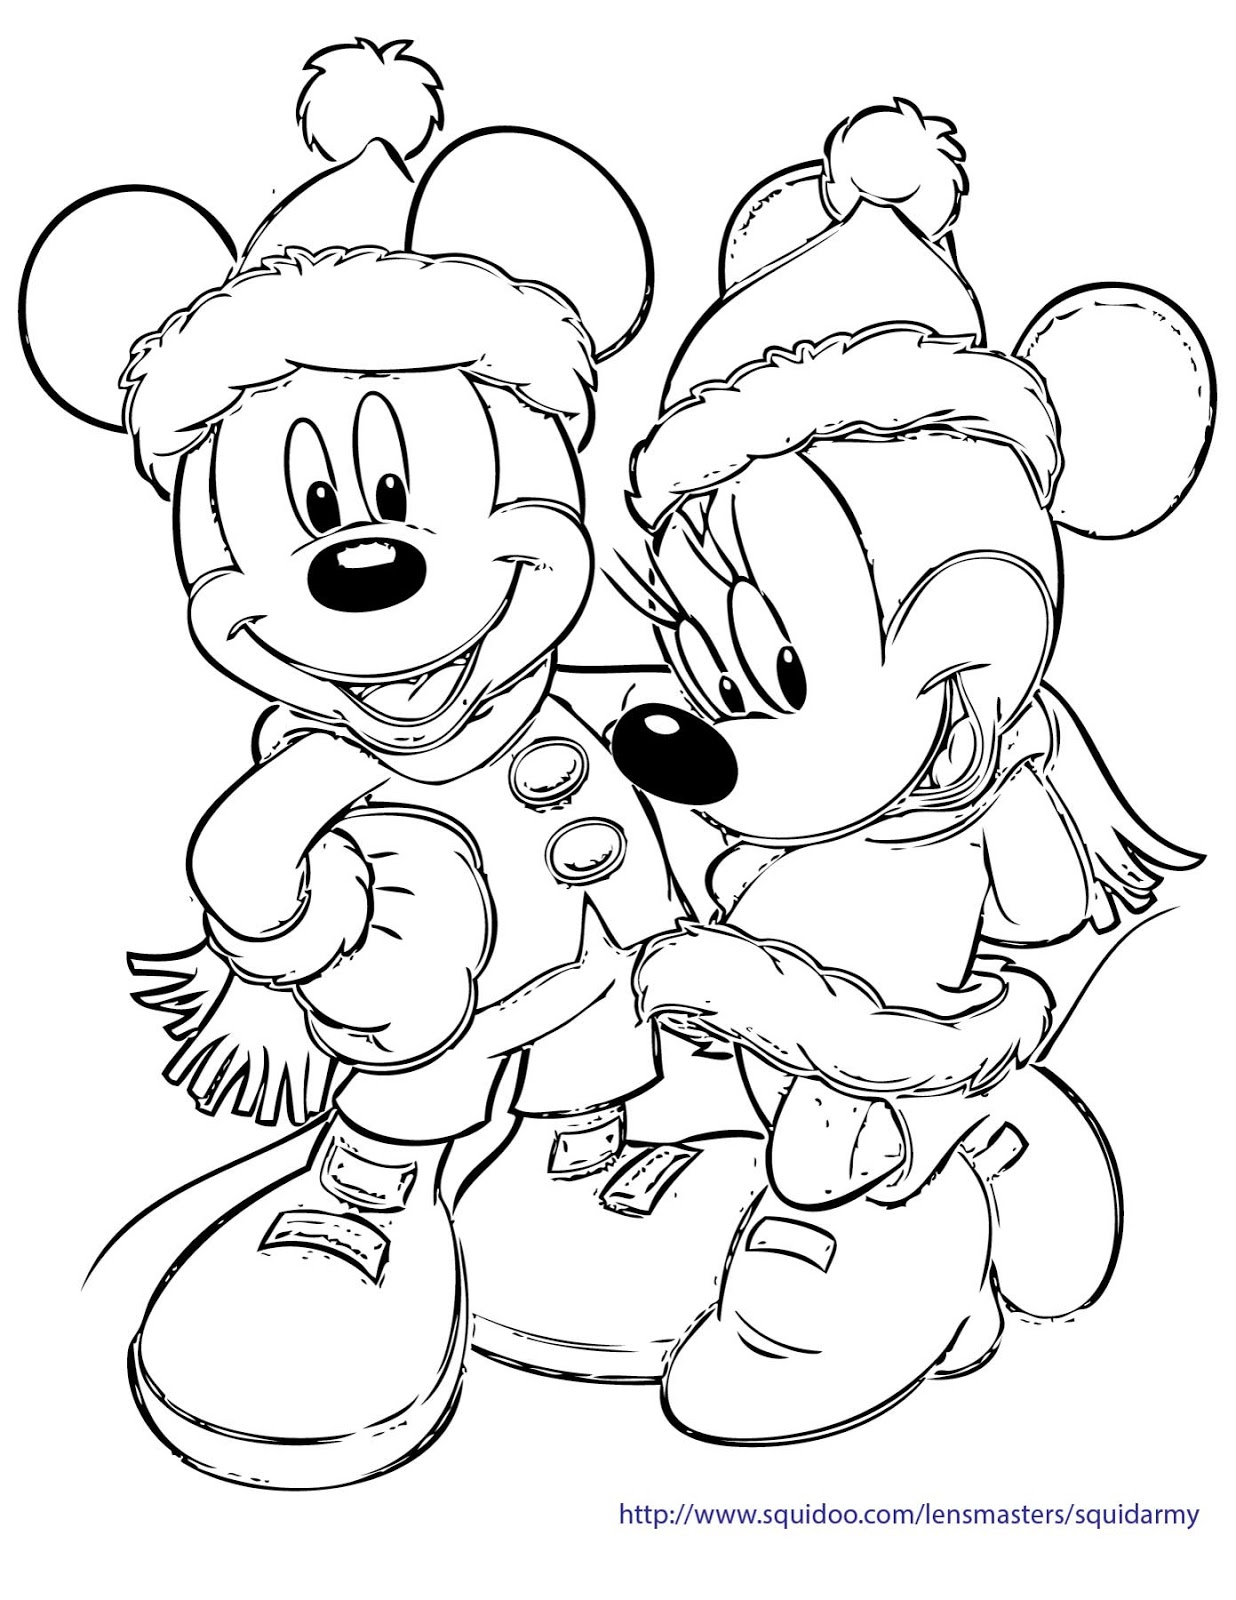 1236x1600 Minnie Mouse Christmas Coloring Pages Preschool For Sweet Draw